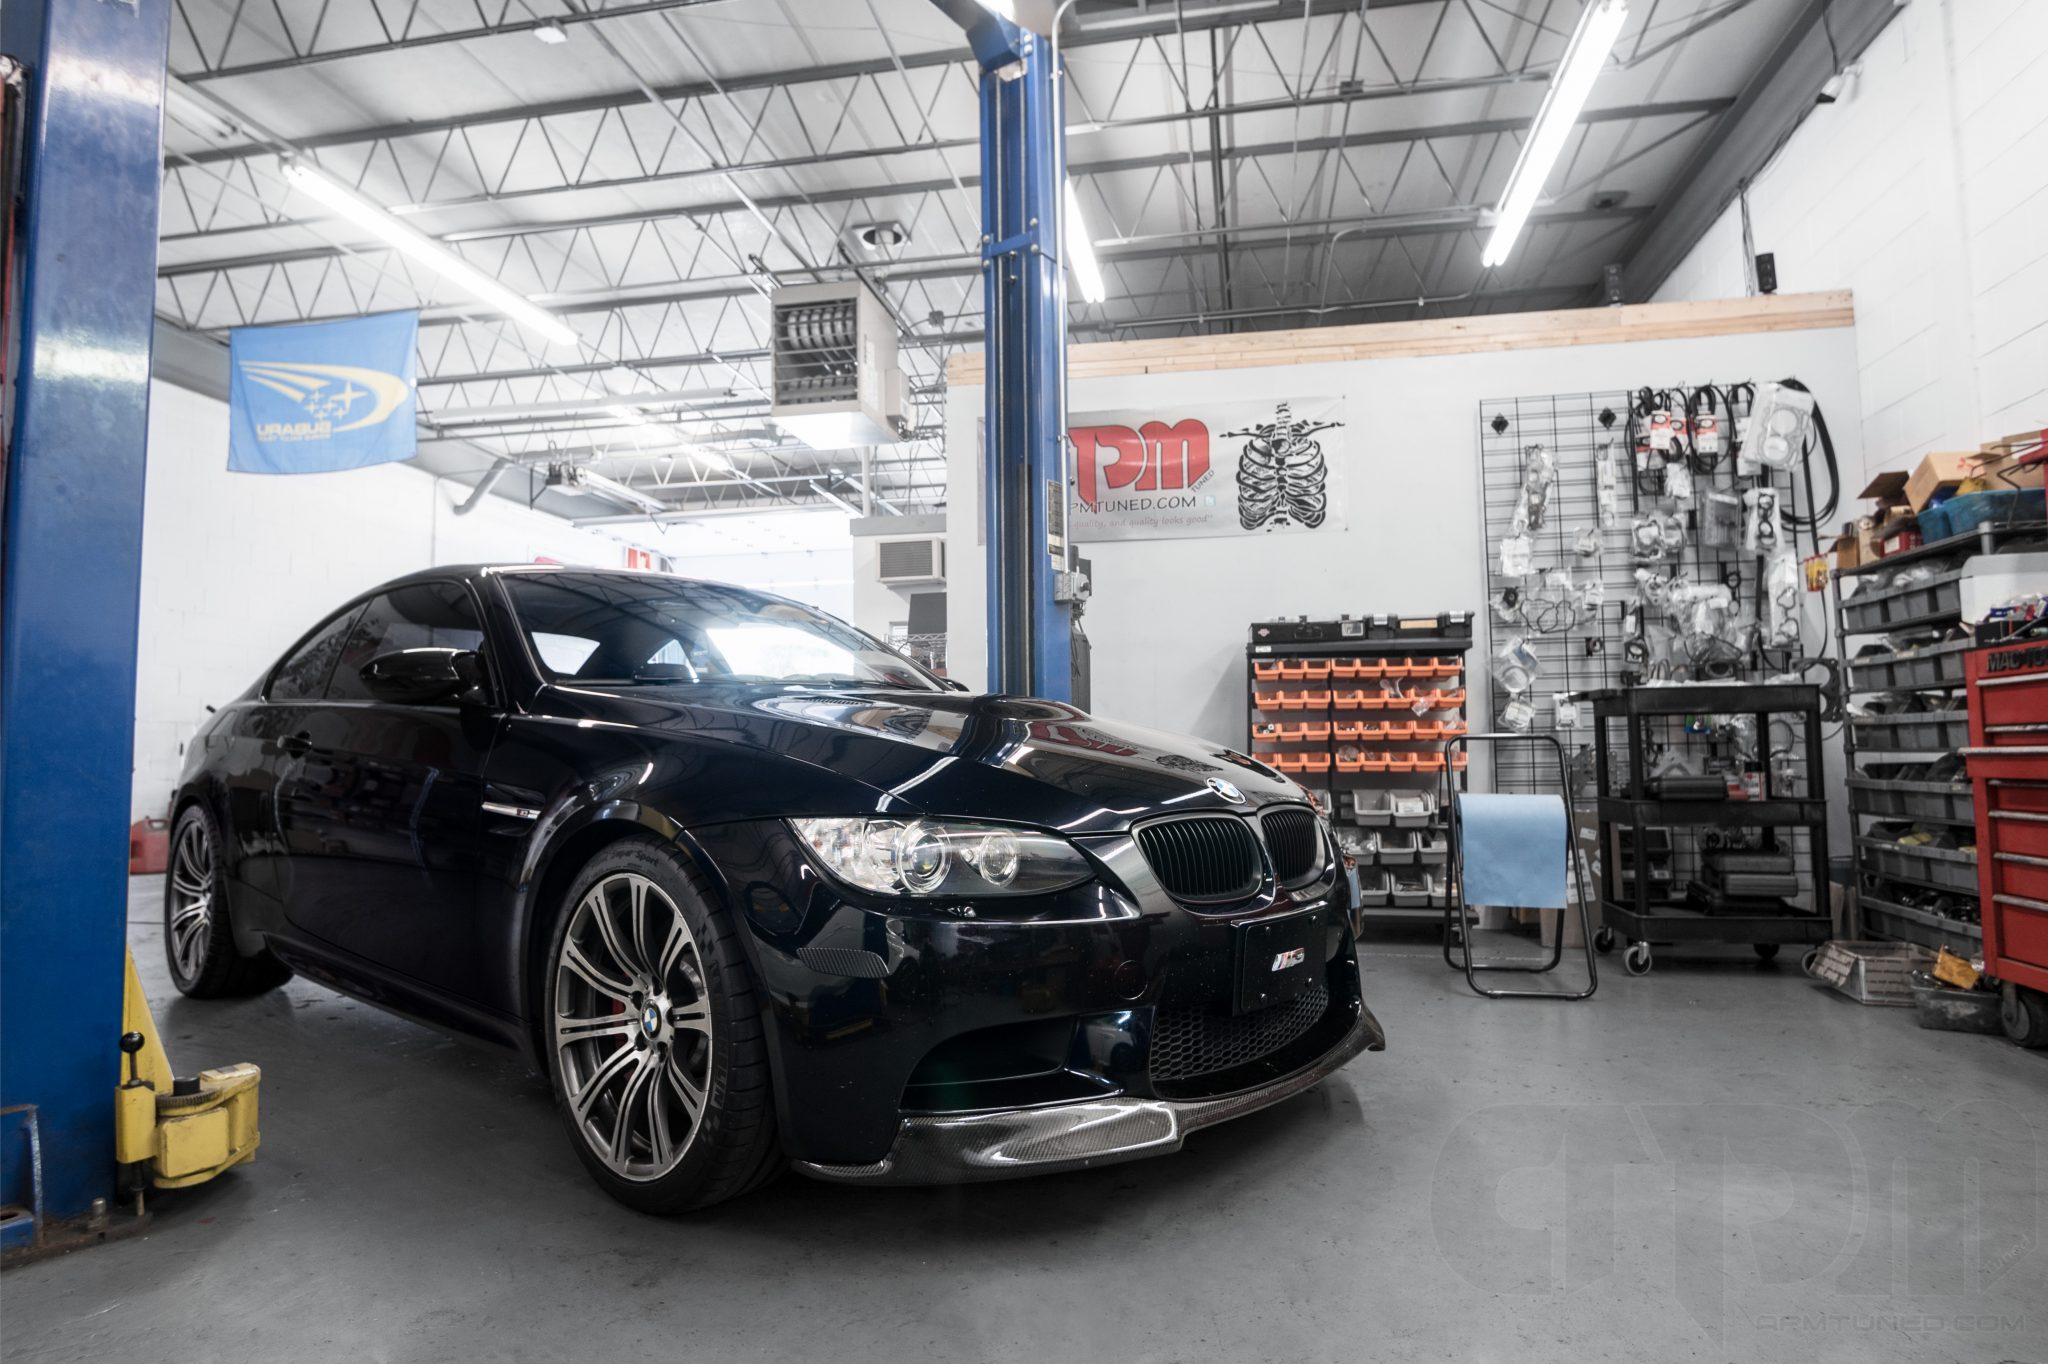 Black BMW M3 in our shop getting ready for an exhaust modification